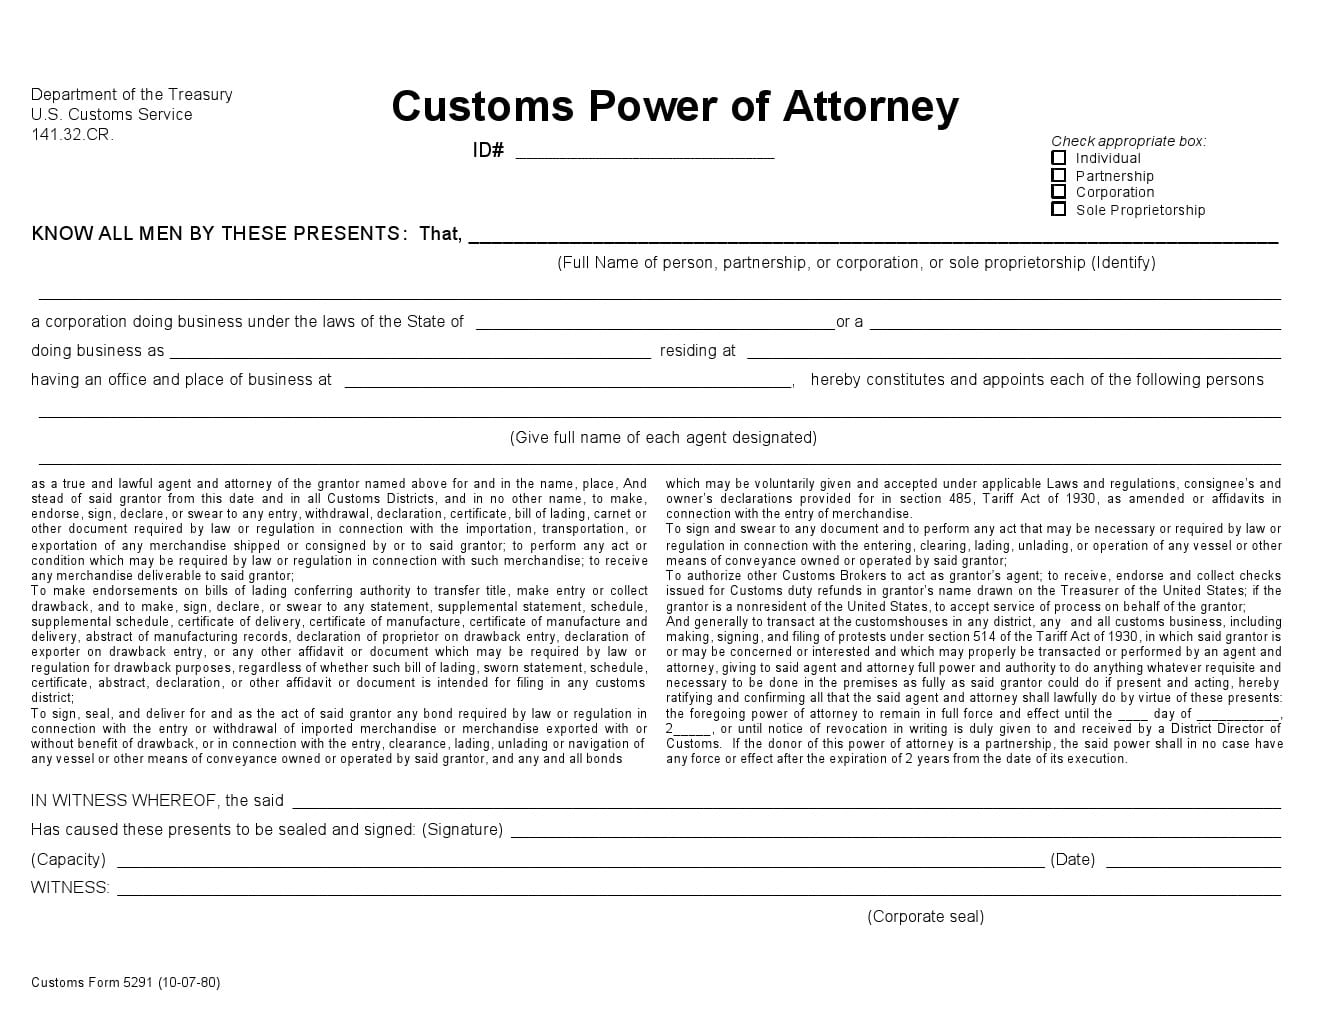 Free Customs Power Of Attorney Forms Customs power of attorney template